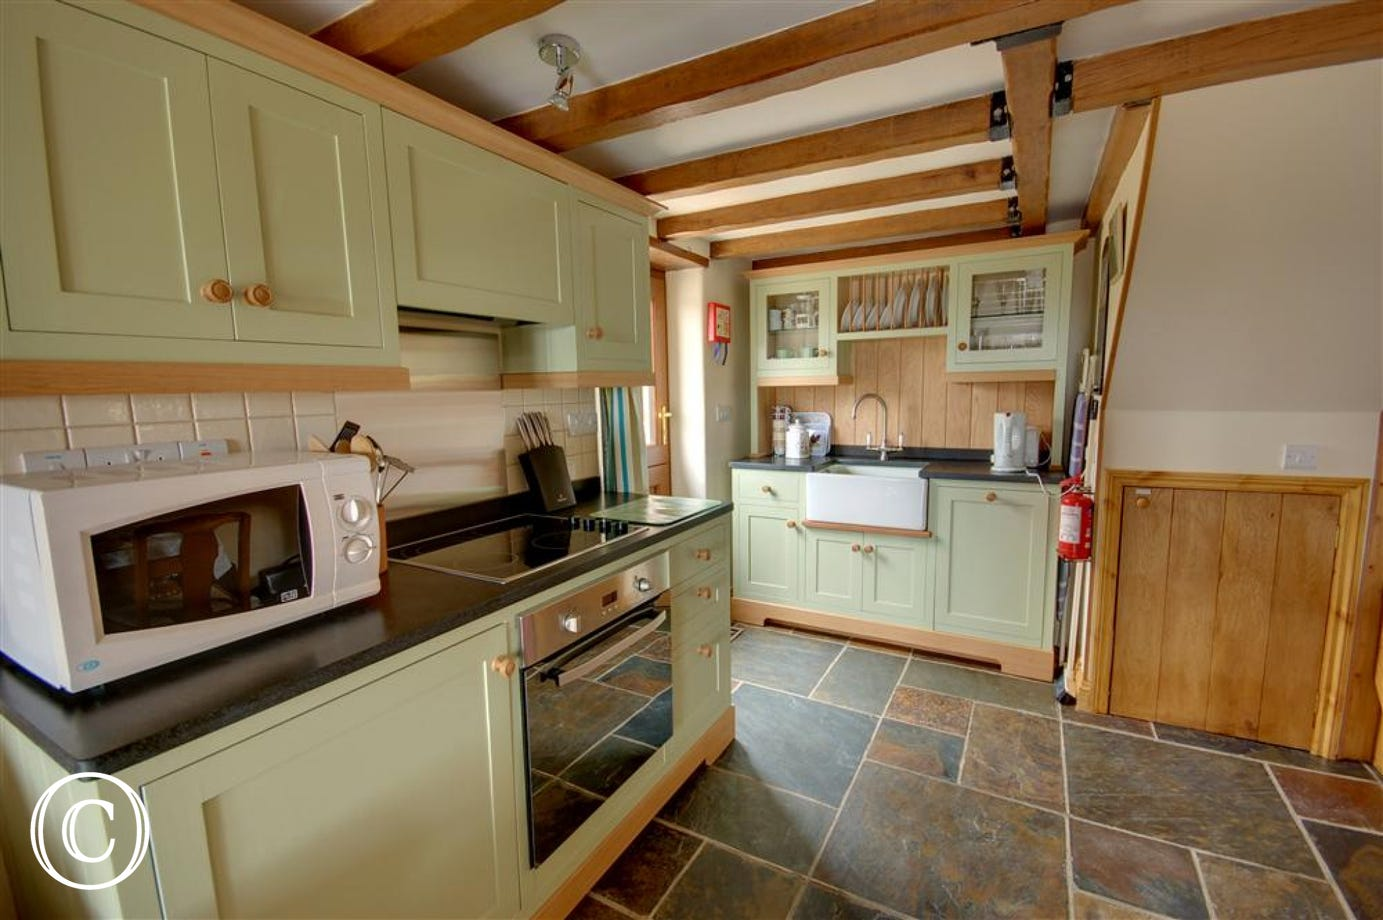 The delightful country style kitchen